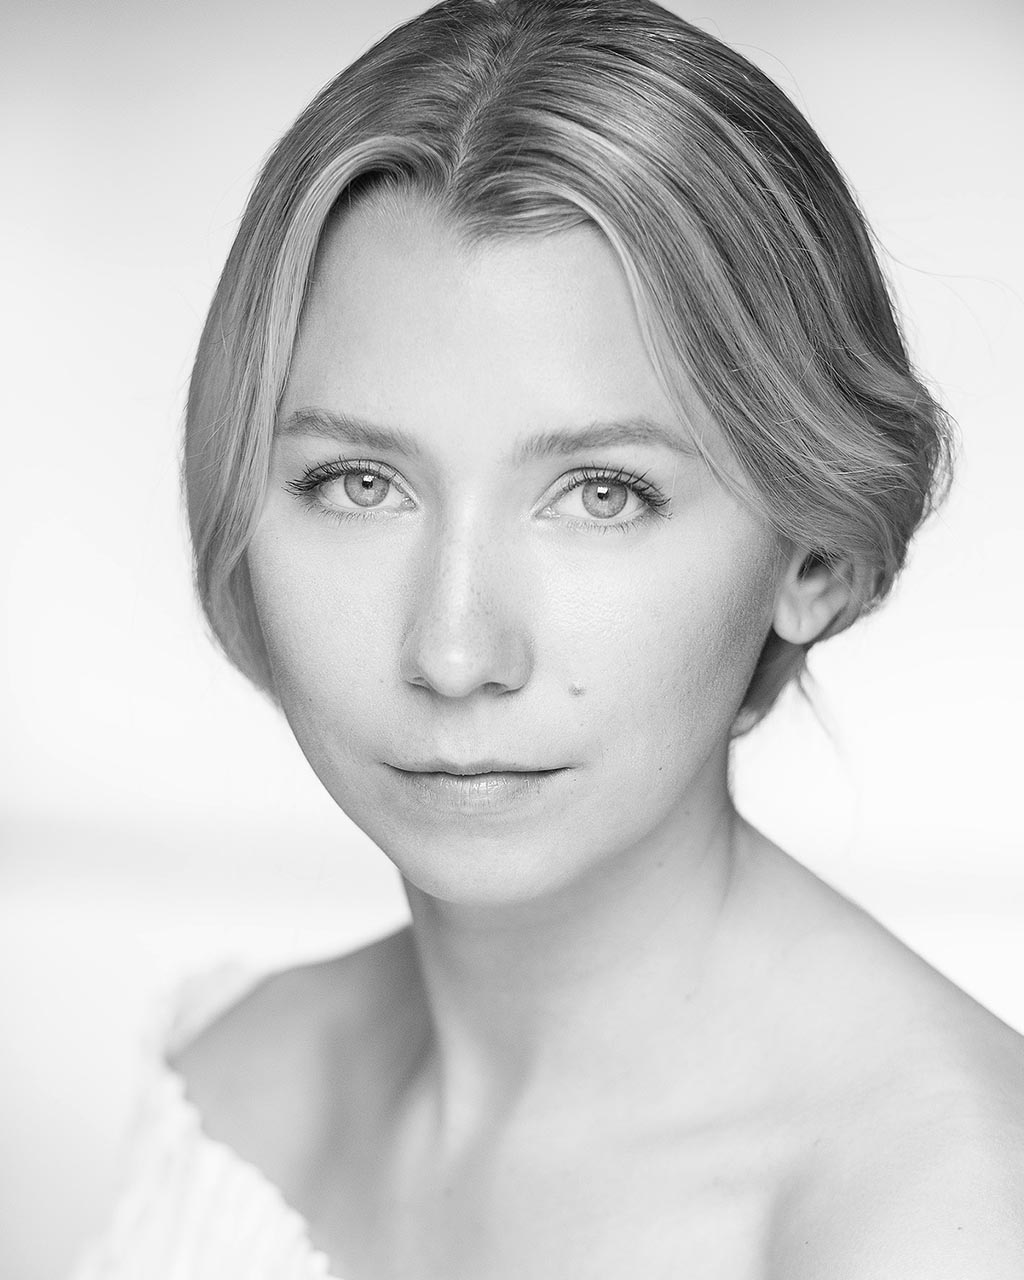 Actress Head Shots London MAD Photography Hanne Evhammar 6216